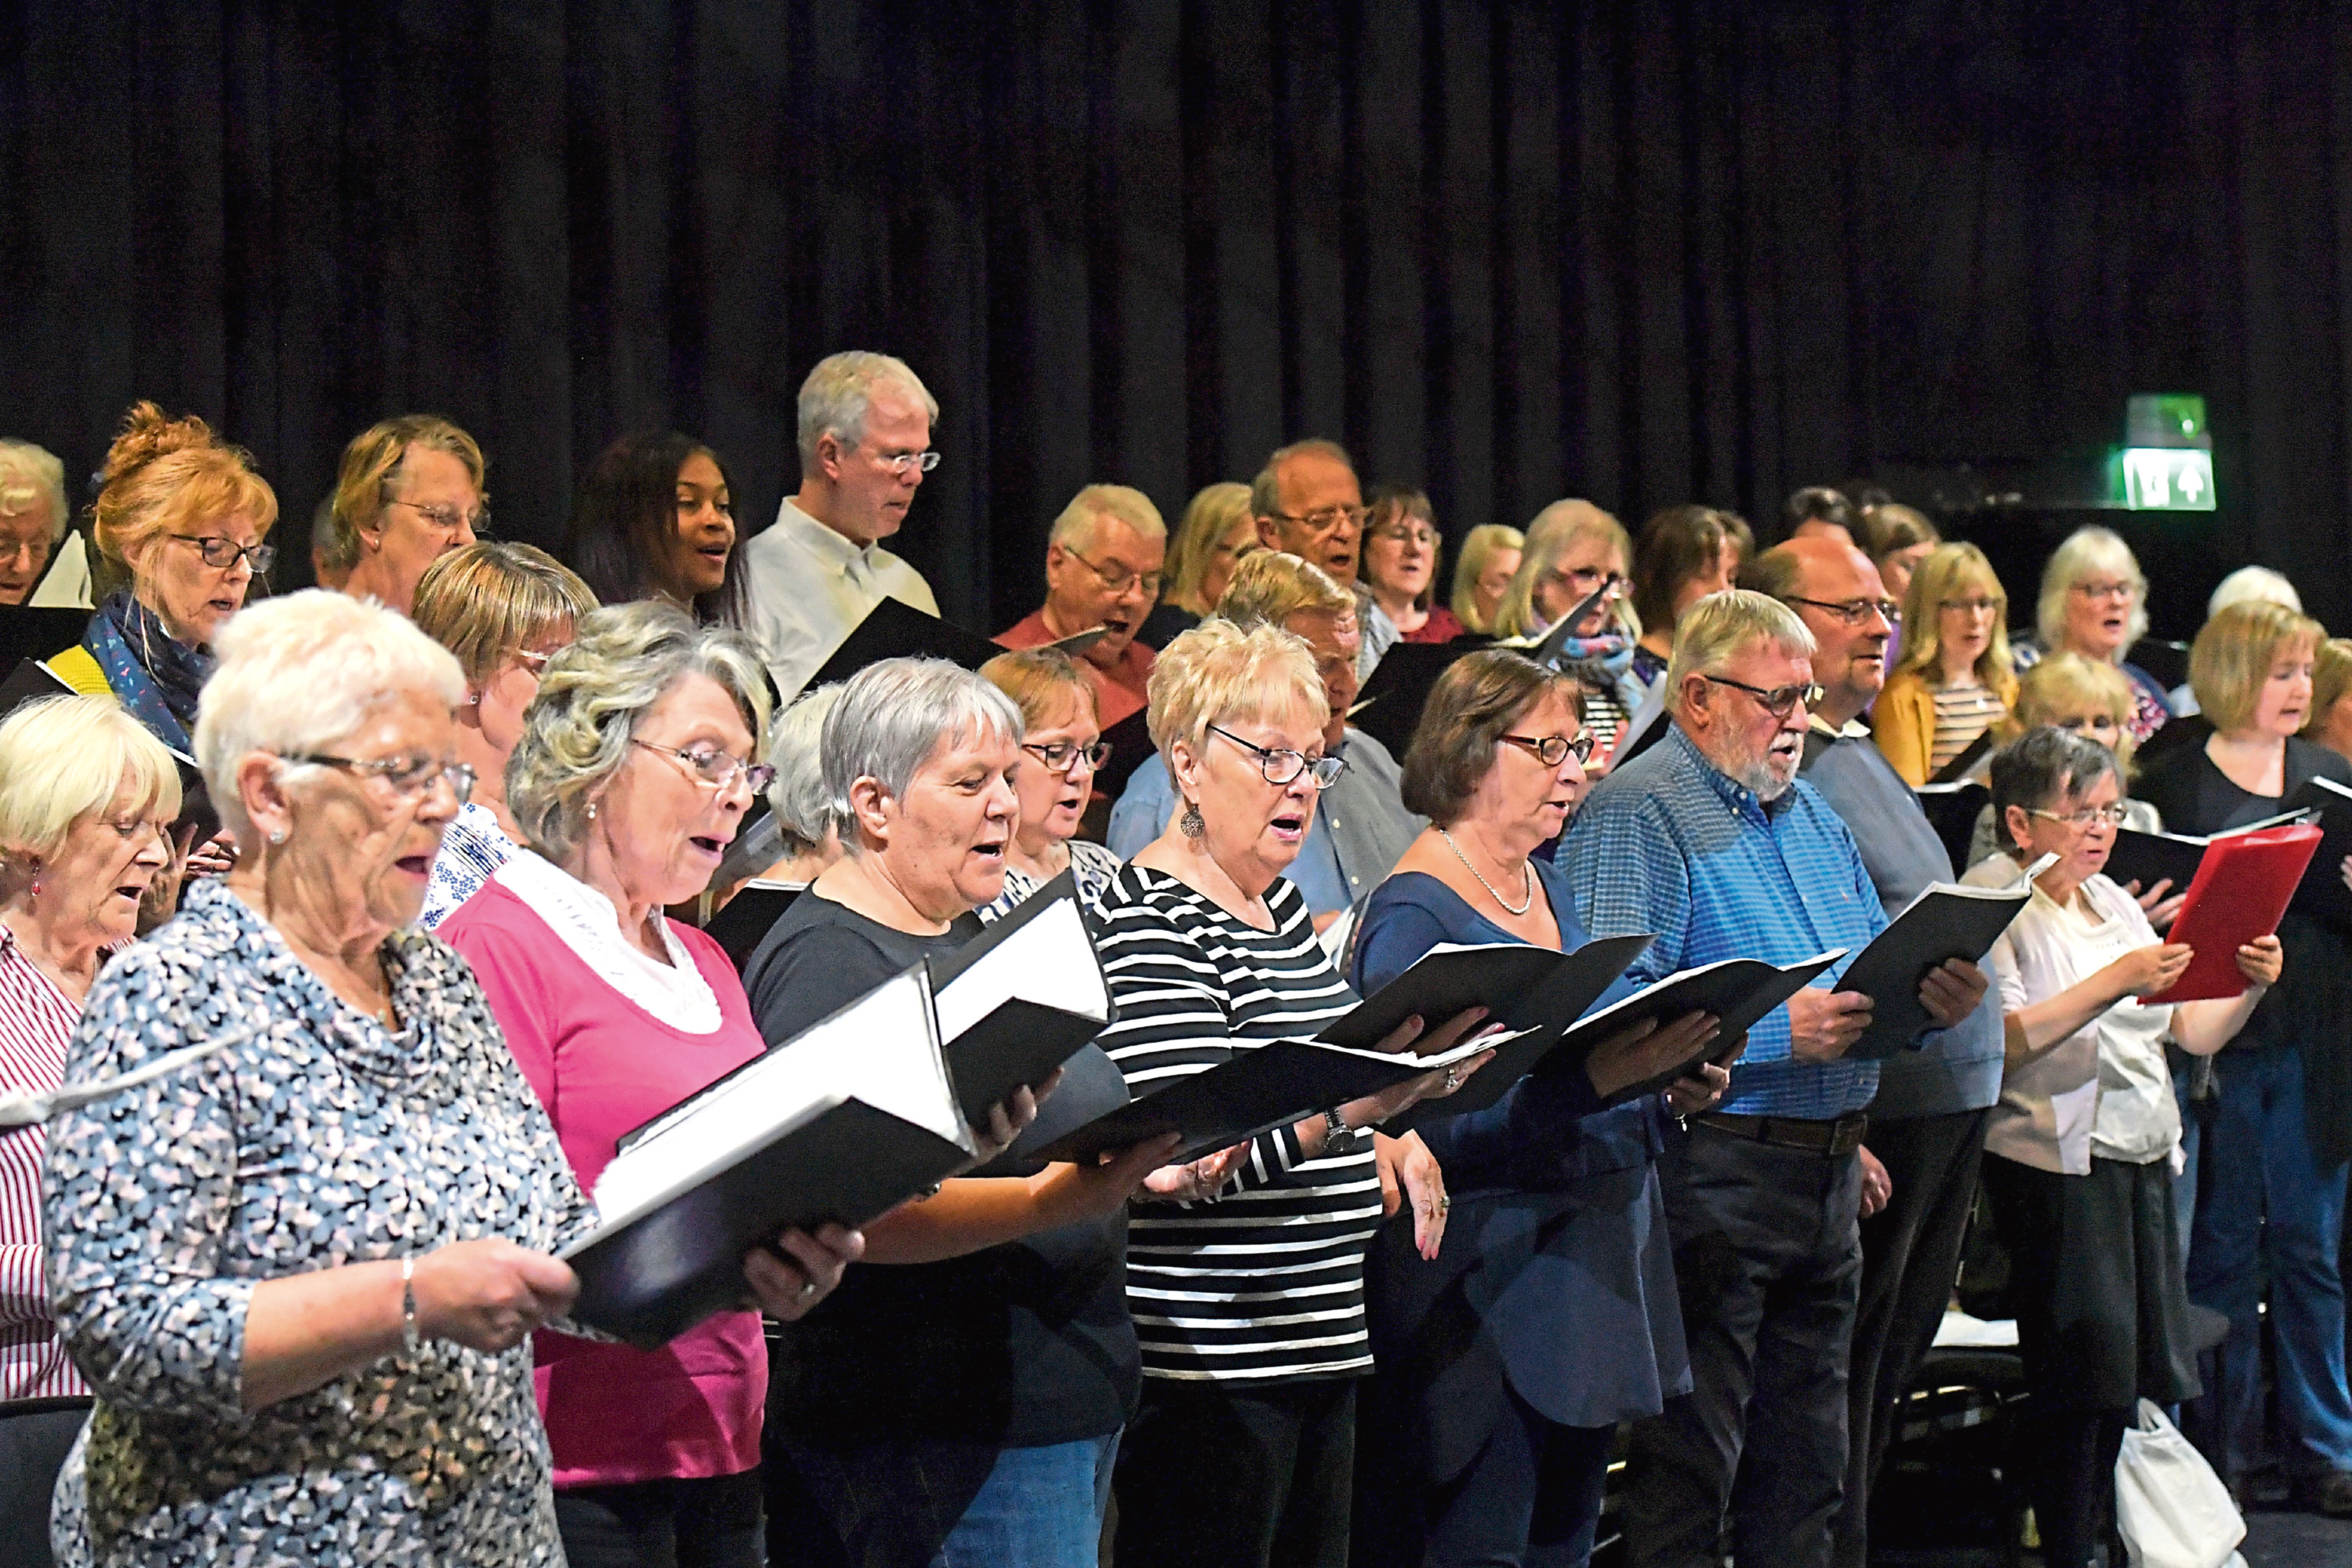 The Music Hall was reopened with a performance by Travis' Fran Healy with the APA community choir, pictured